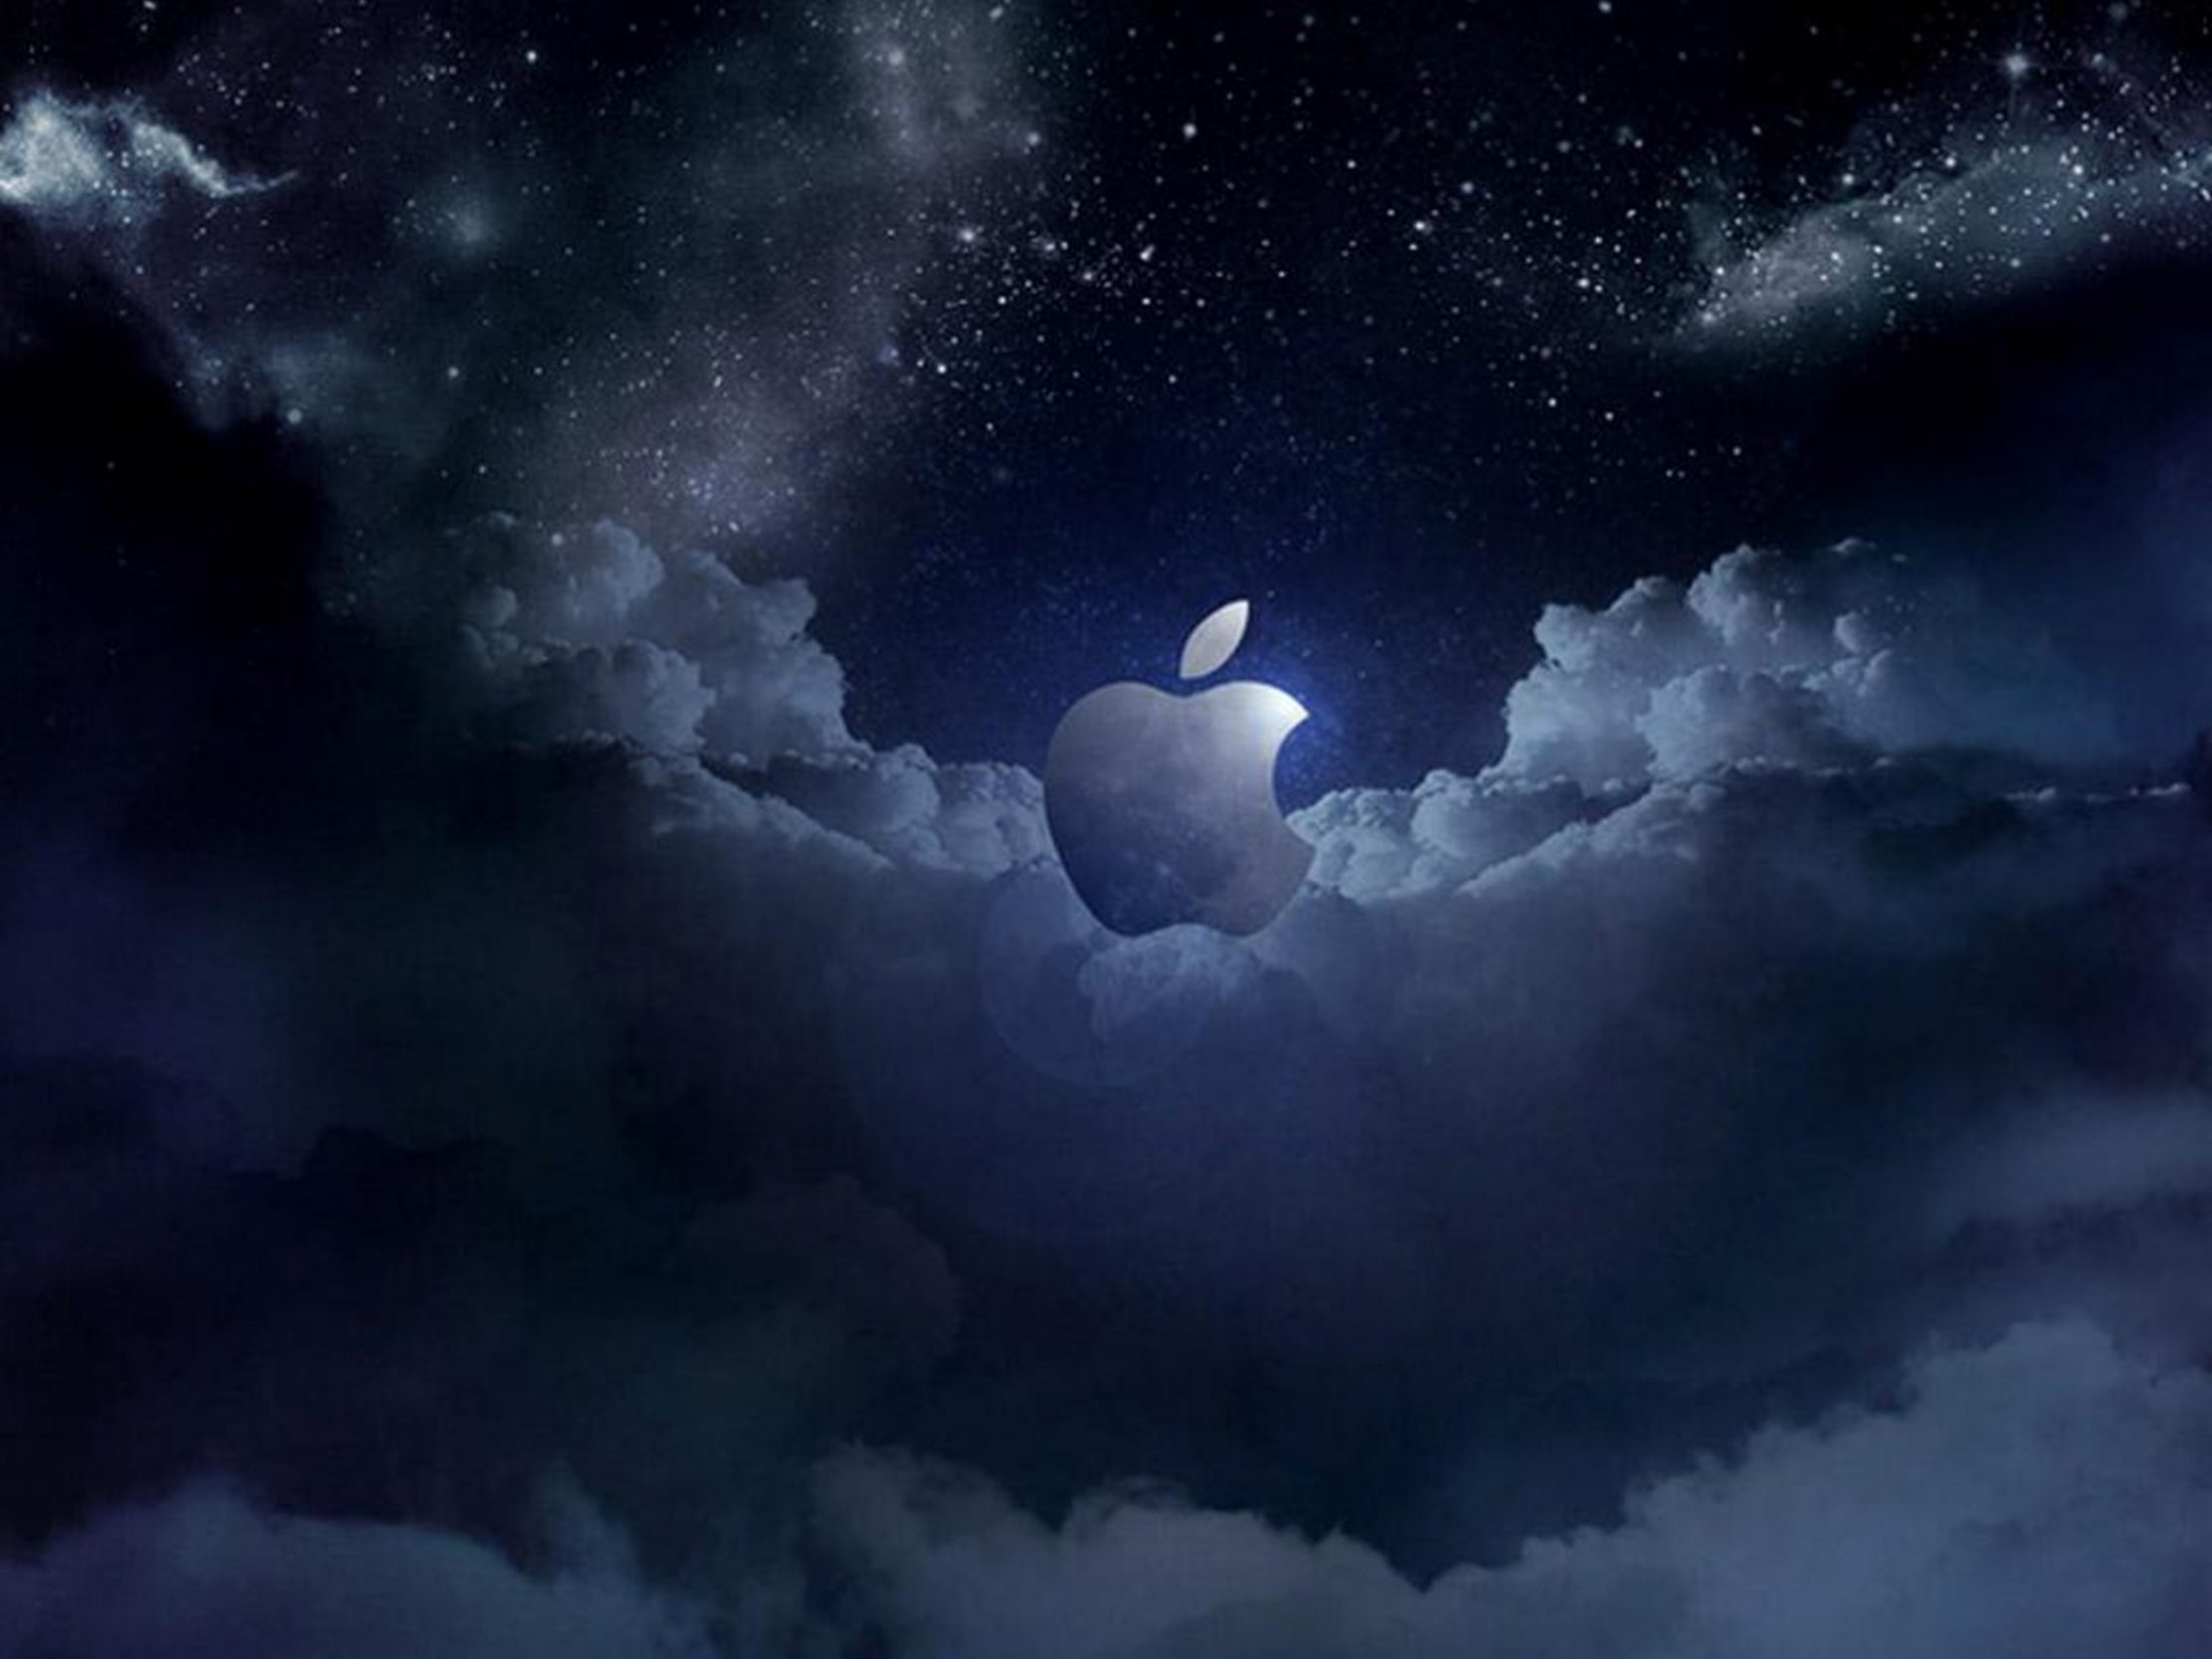 2224x1668 iPad Pro wallpapers Apple Cloud at Night Ipad Wallpaper 2224x1668 pixels resolution